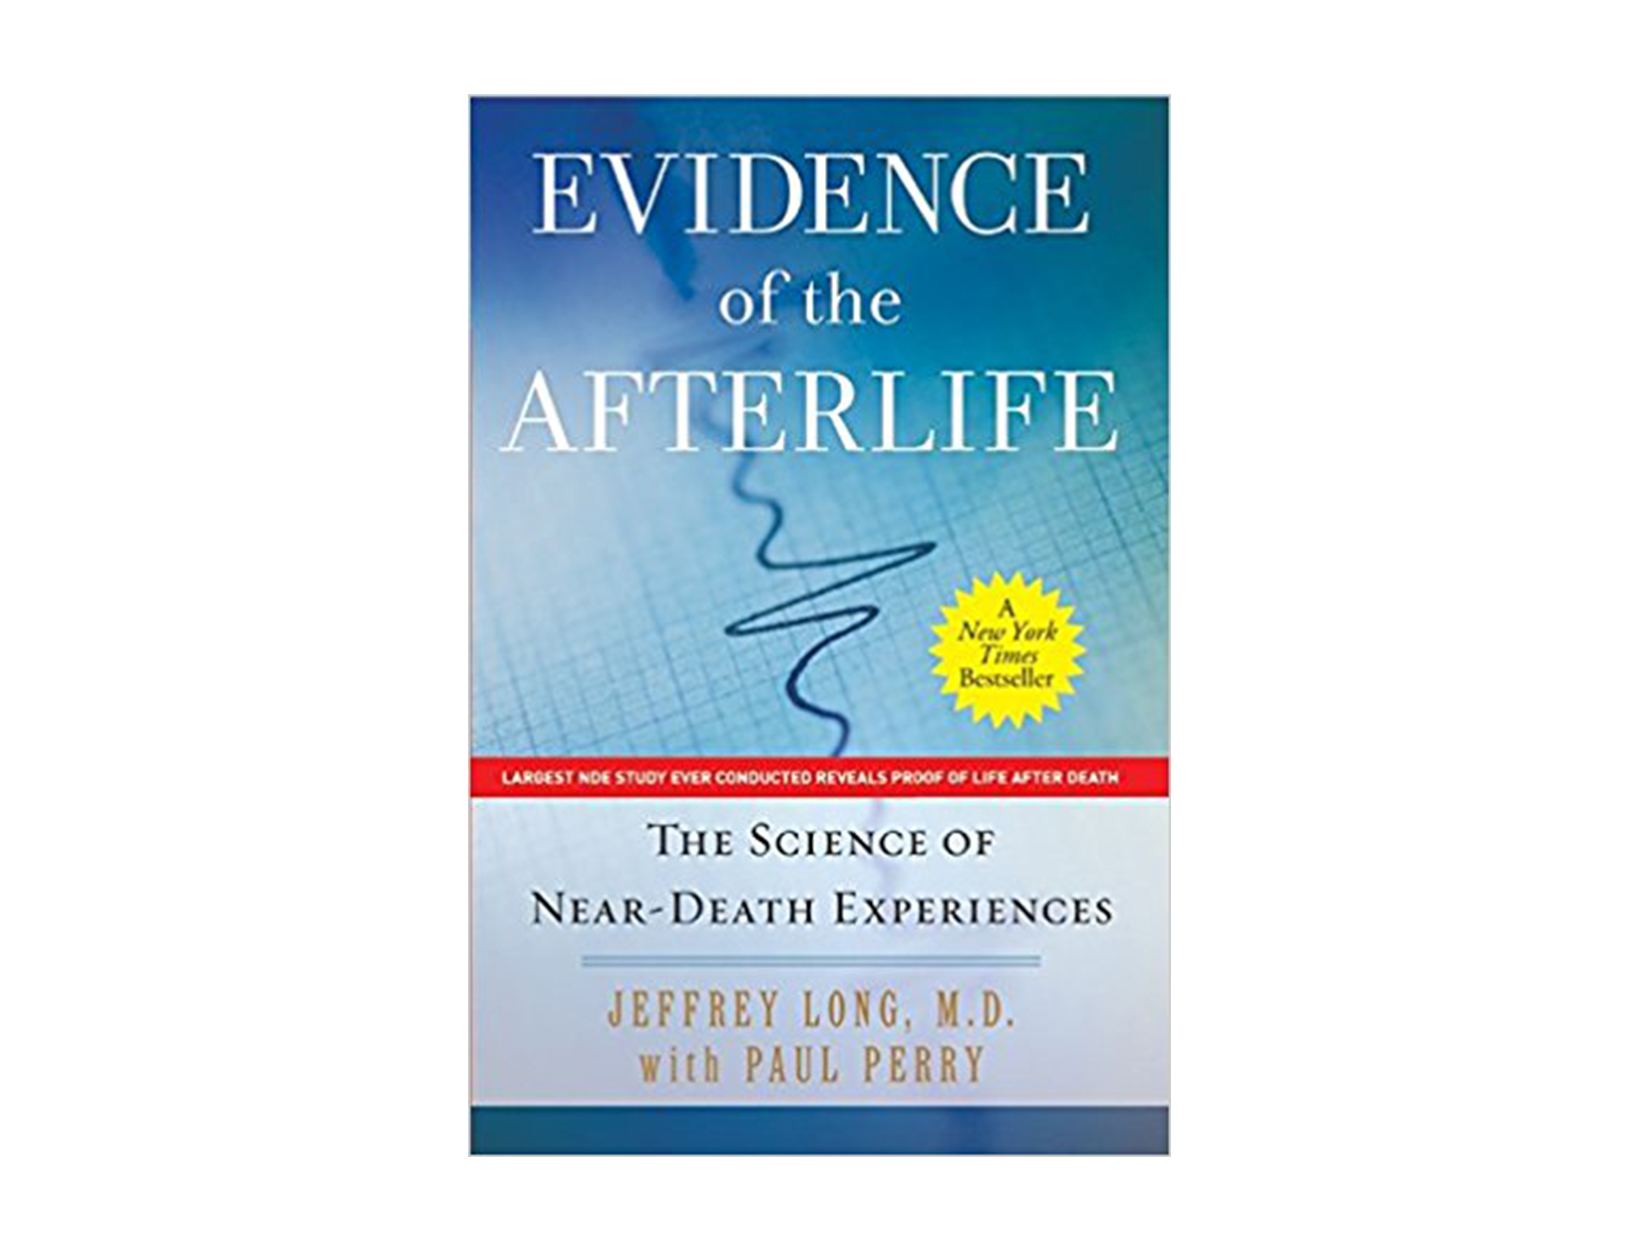 Evidence of the Afterlife: The Science of Near-Death Experiences by Jeffrey Long, M.D.